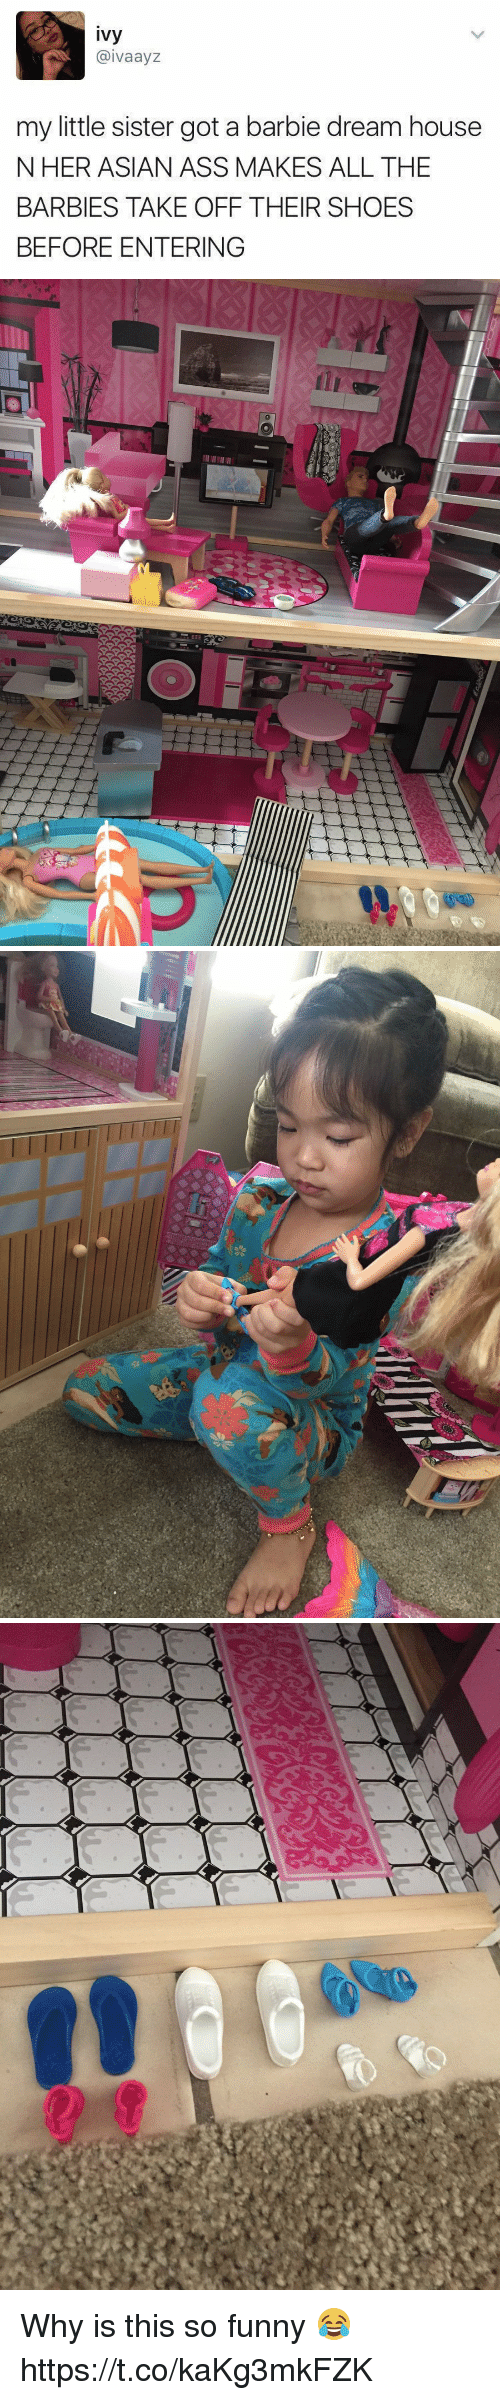 Asian, Ass, and Barbie: ivy  @ivaayz  my little sister got a barbie dream house  NHER ASIAN ASS MAKES ALL THE  BARBIES TAKE OFF THEIR SHOES  BEFORE ENTERING Why is this so funny 😂 https://t.co/kaKg3mkFZK